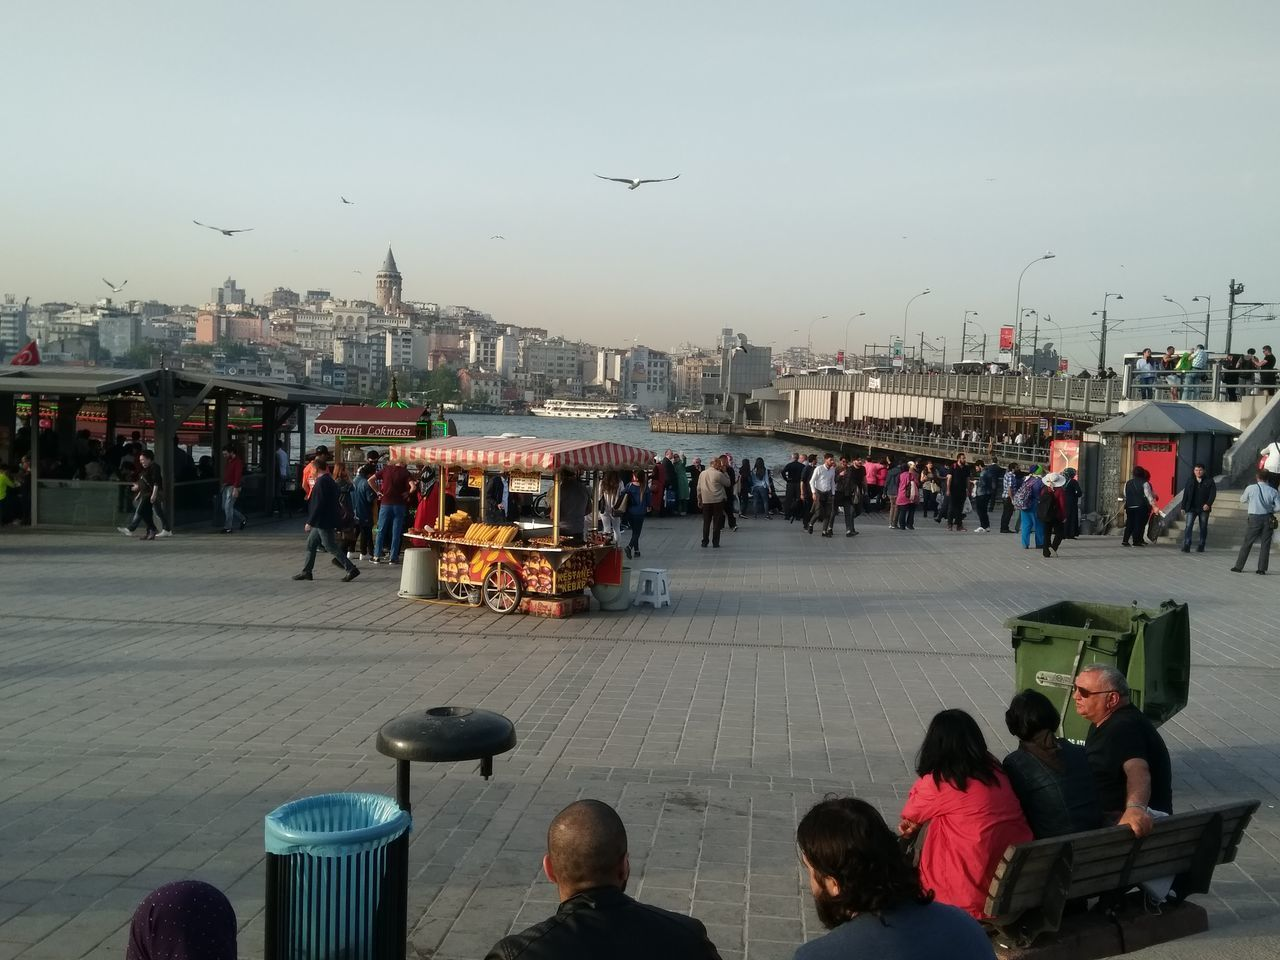 Eminönü/ İstanbul Large Group Of People Crowd City People Travel Destinations Cityscape Outdoors Group Of People Vacations Sky Urban Skyline Adult Day Politics And Government Ice Rink Adults Only